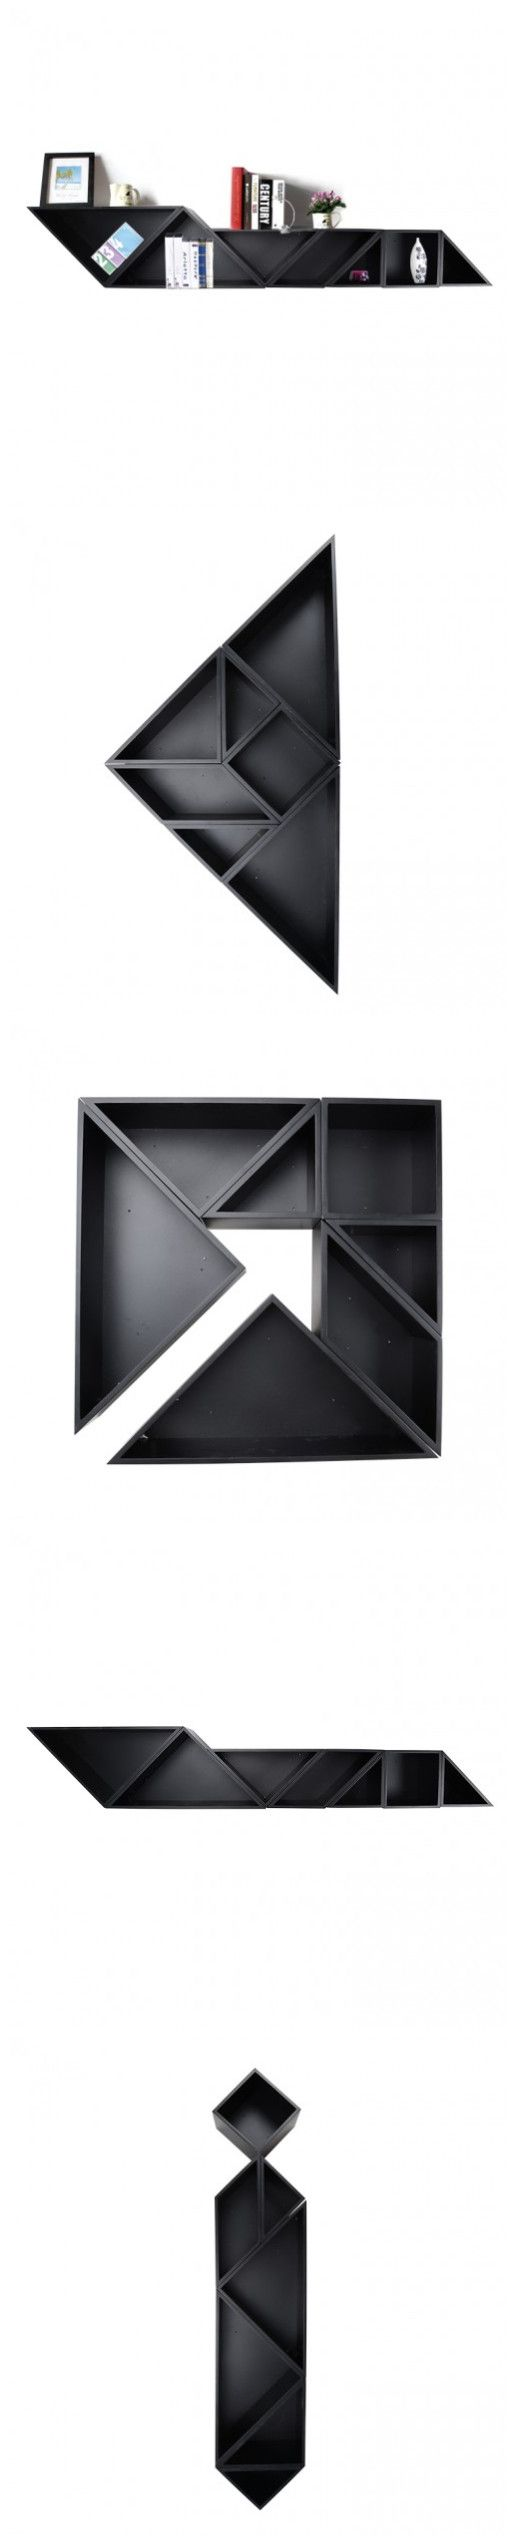 """I am seriously impressed!! """"Tangram"""" Wooden Display Shelf: we can select different Tangram style shapes for our home 